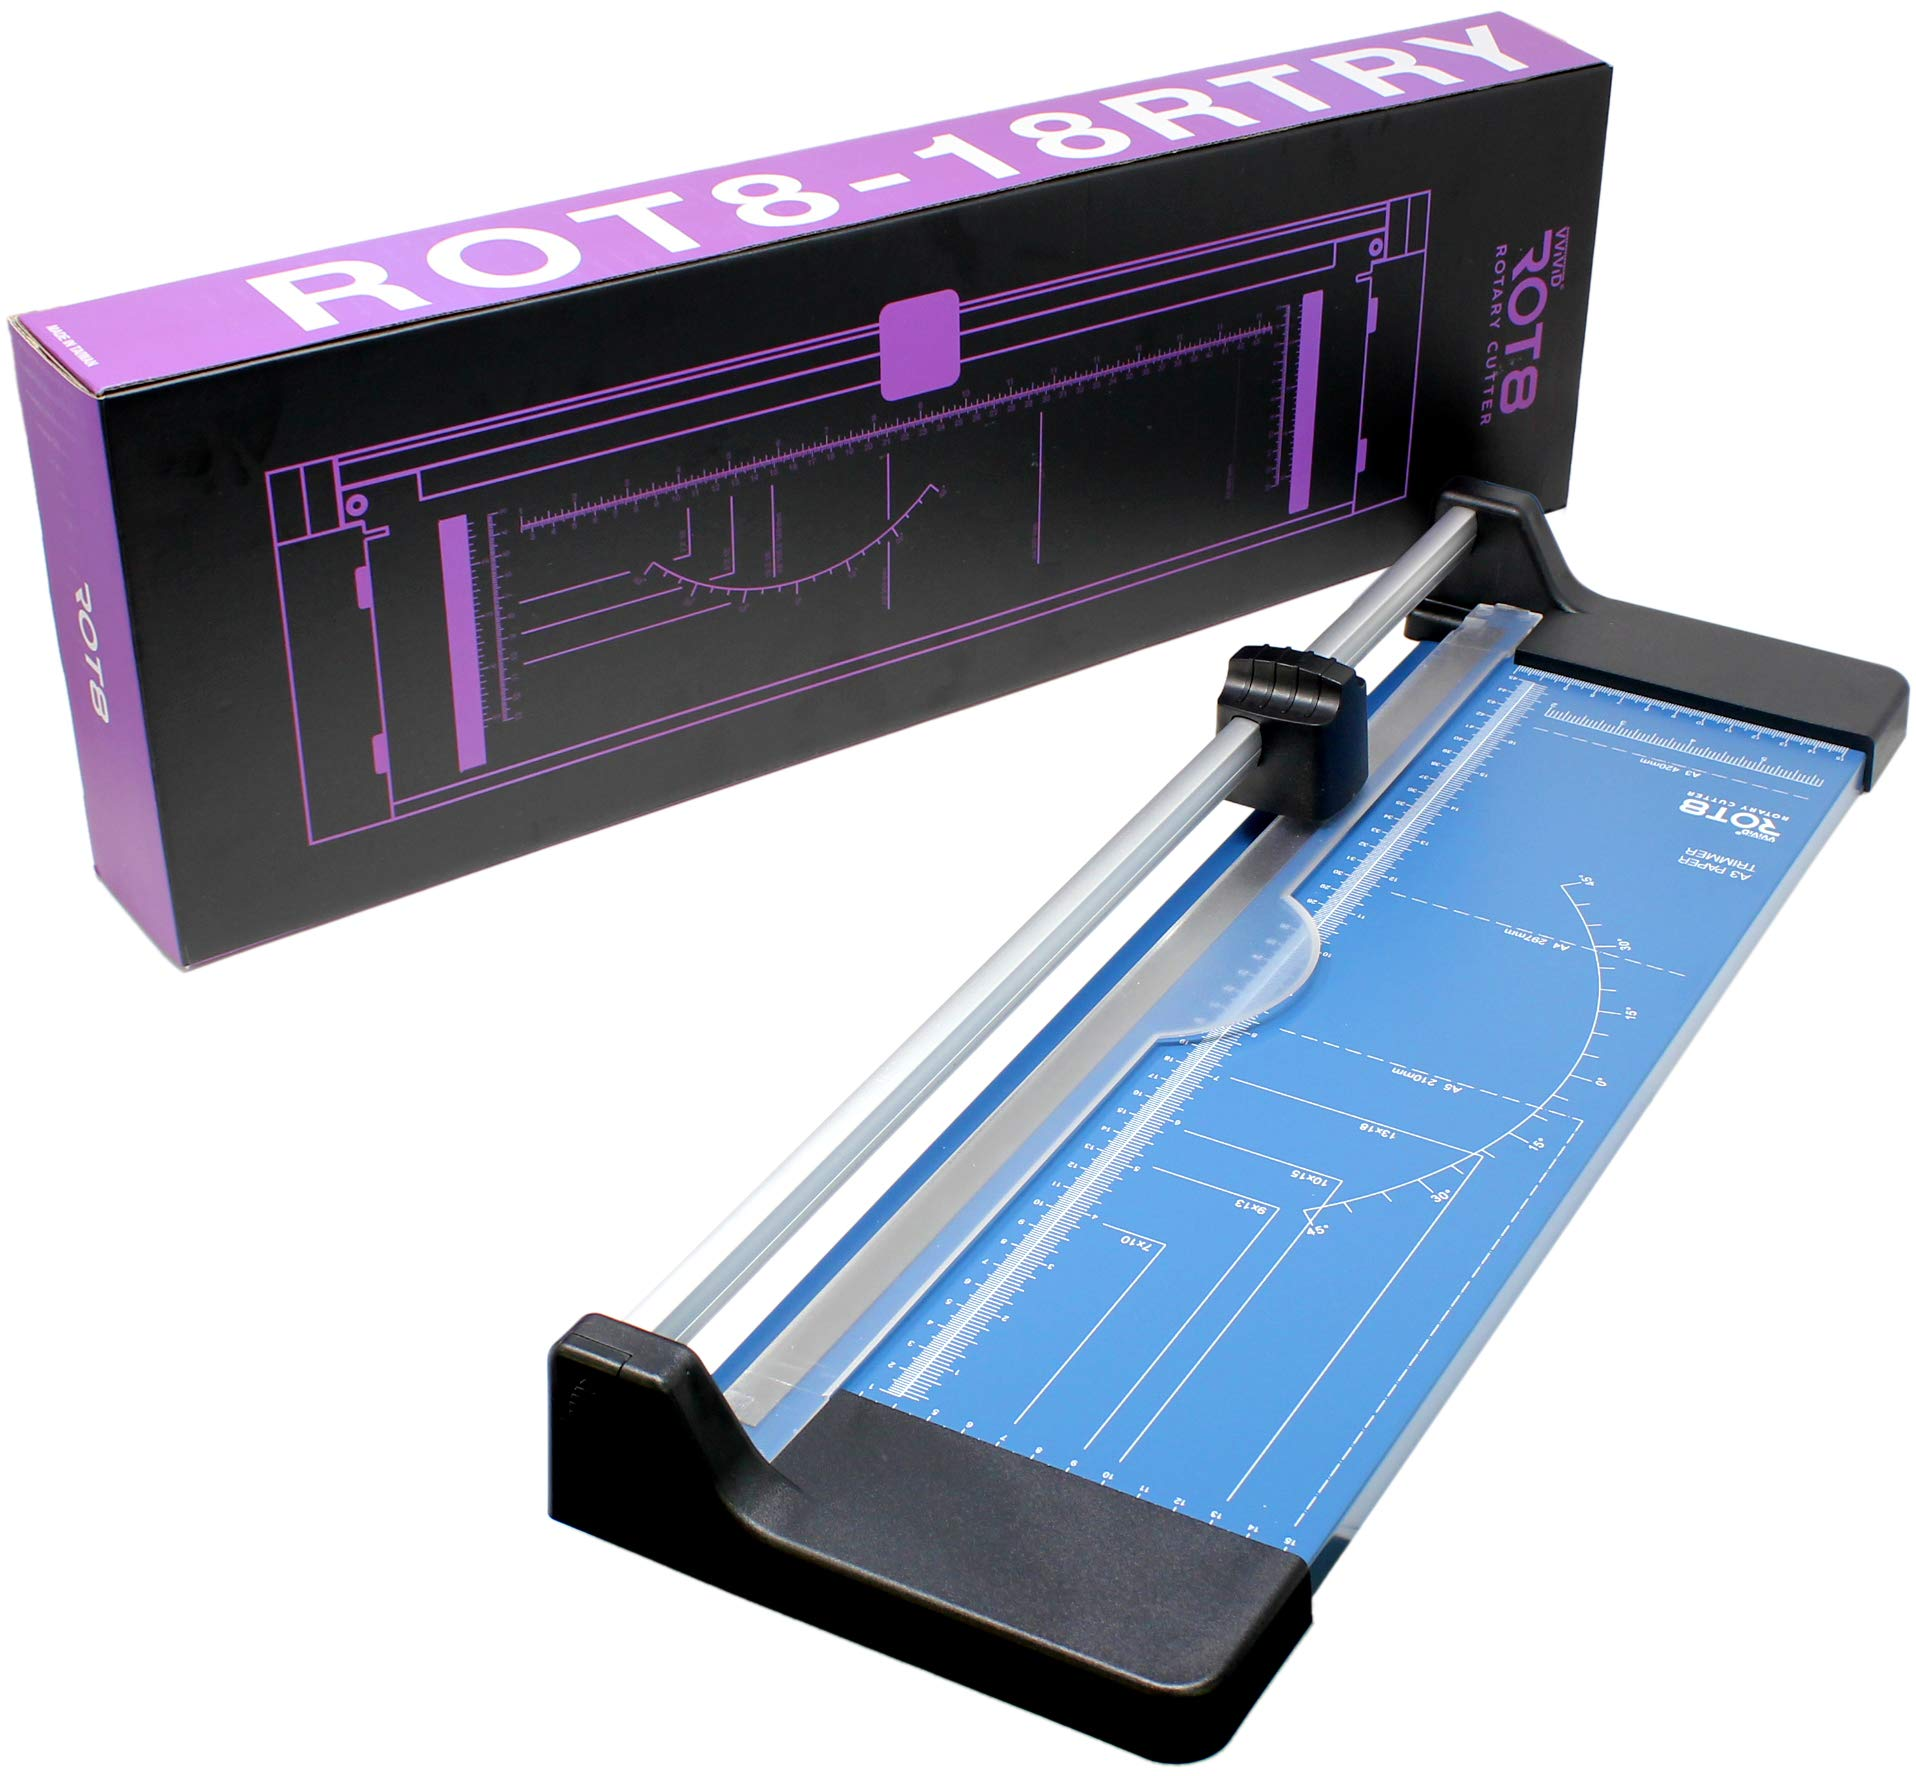 VViViD Rot8 18'' Heavy-Duty Sliding Rotary Paper Cutter and Trimmer by VViViD